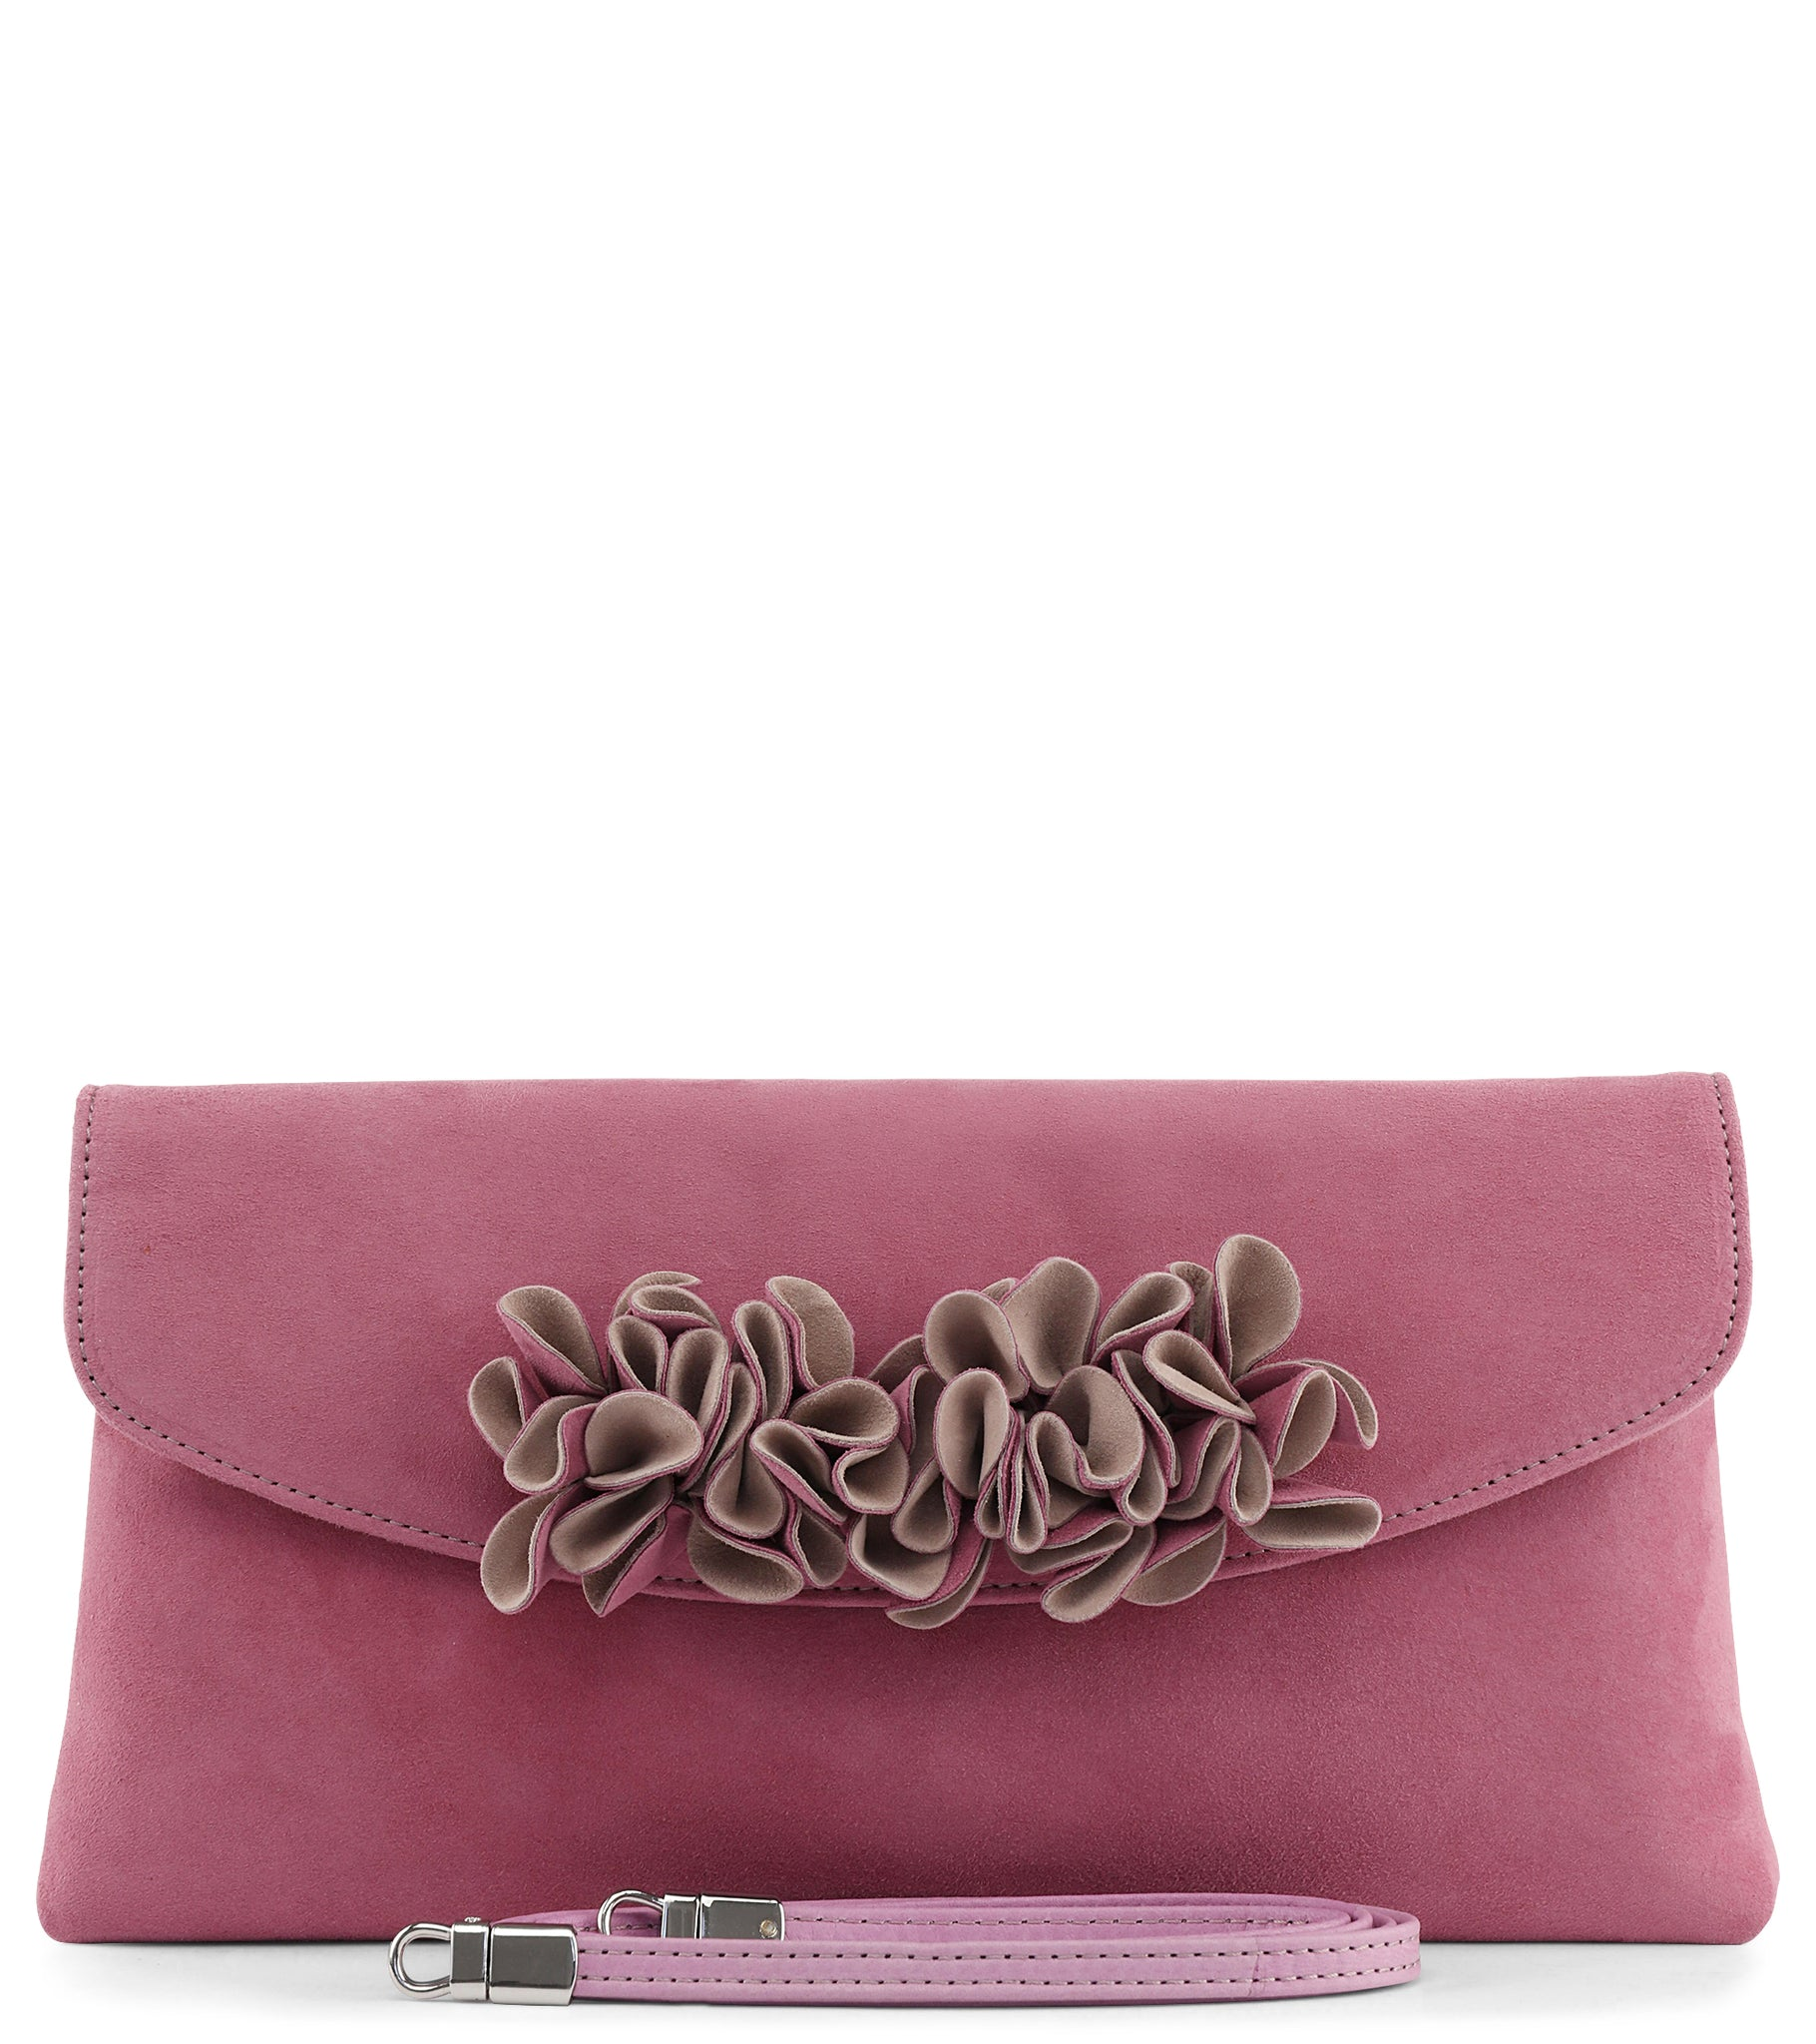 Peter Kaiser clutch bag PK05B